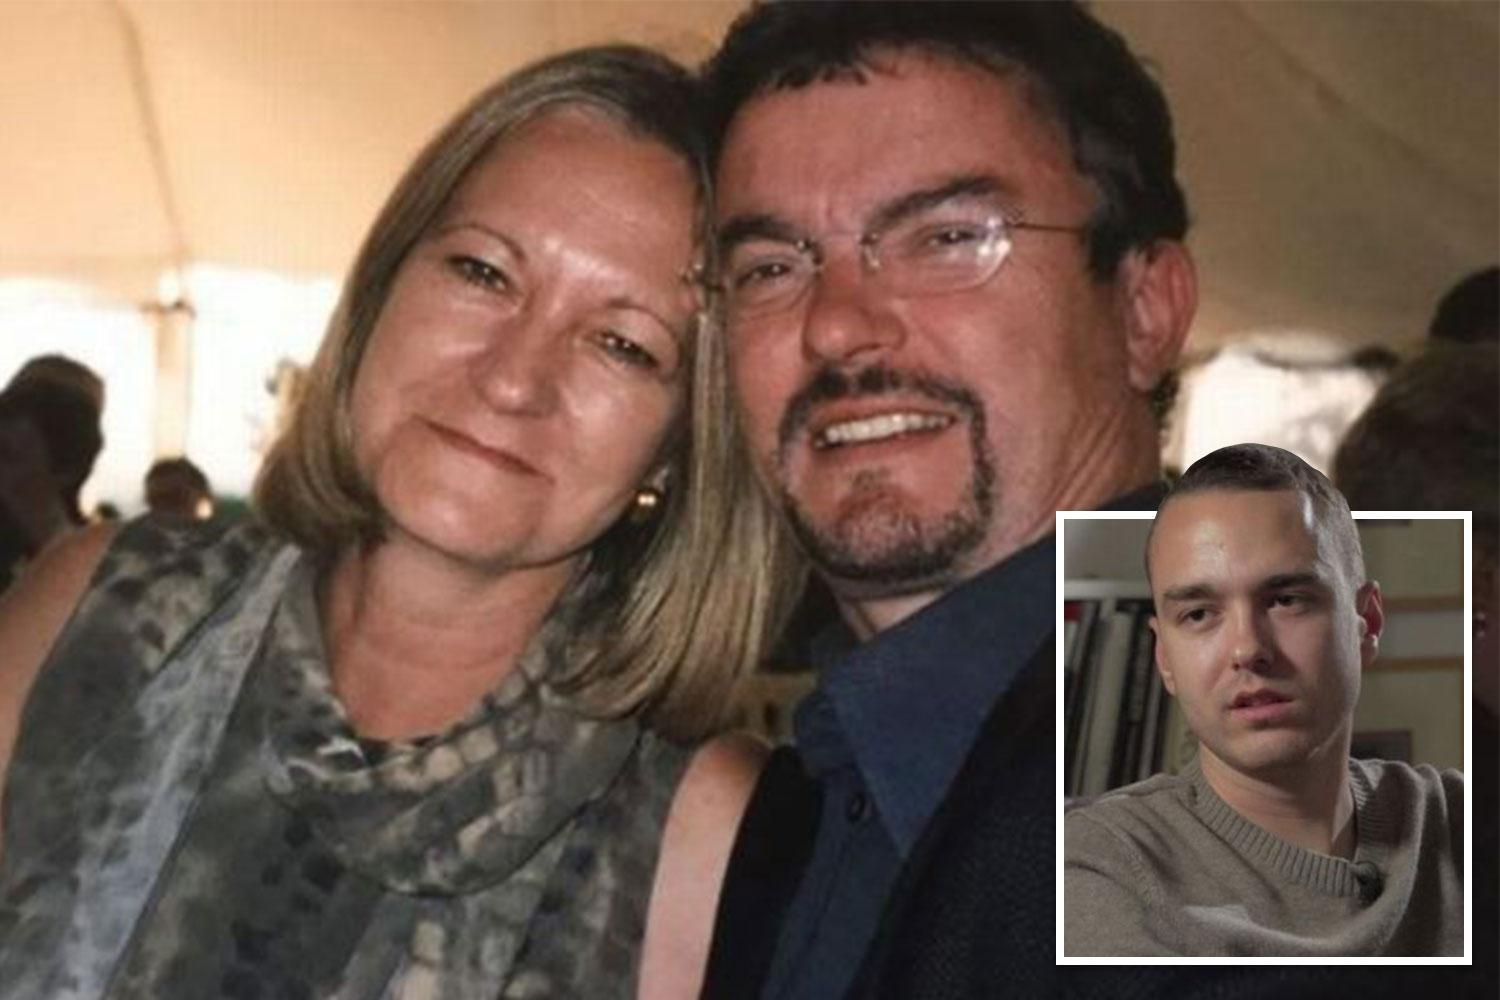 Sons of mum who killed their dad with a hammer call for her to be RELEASED from prison